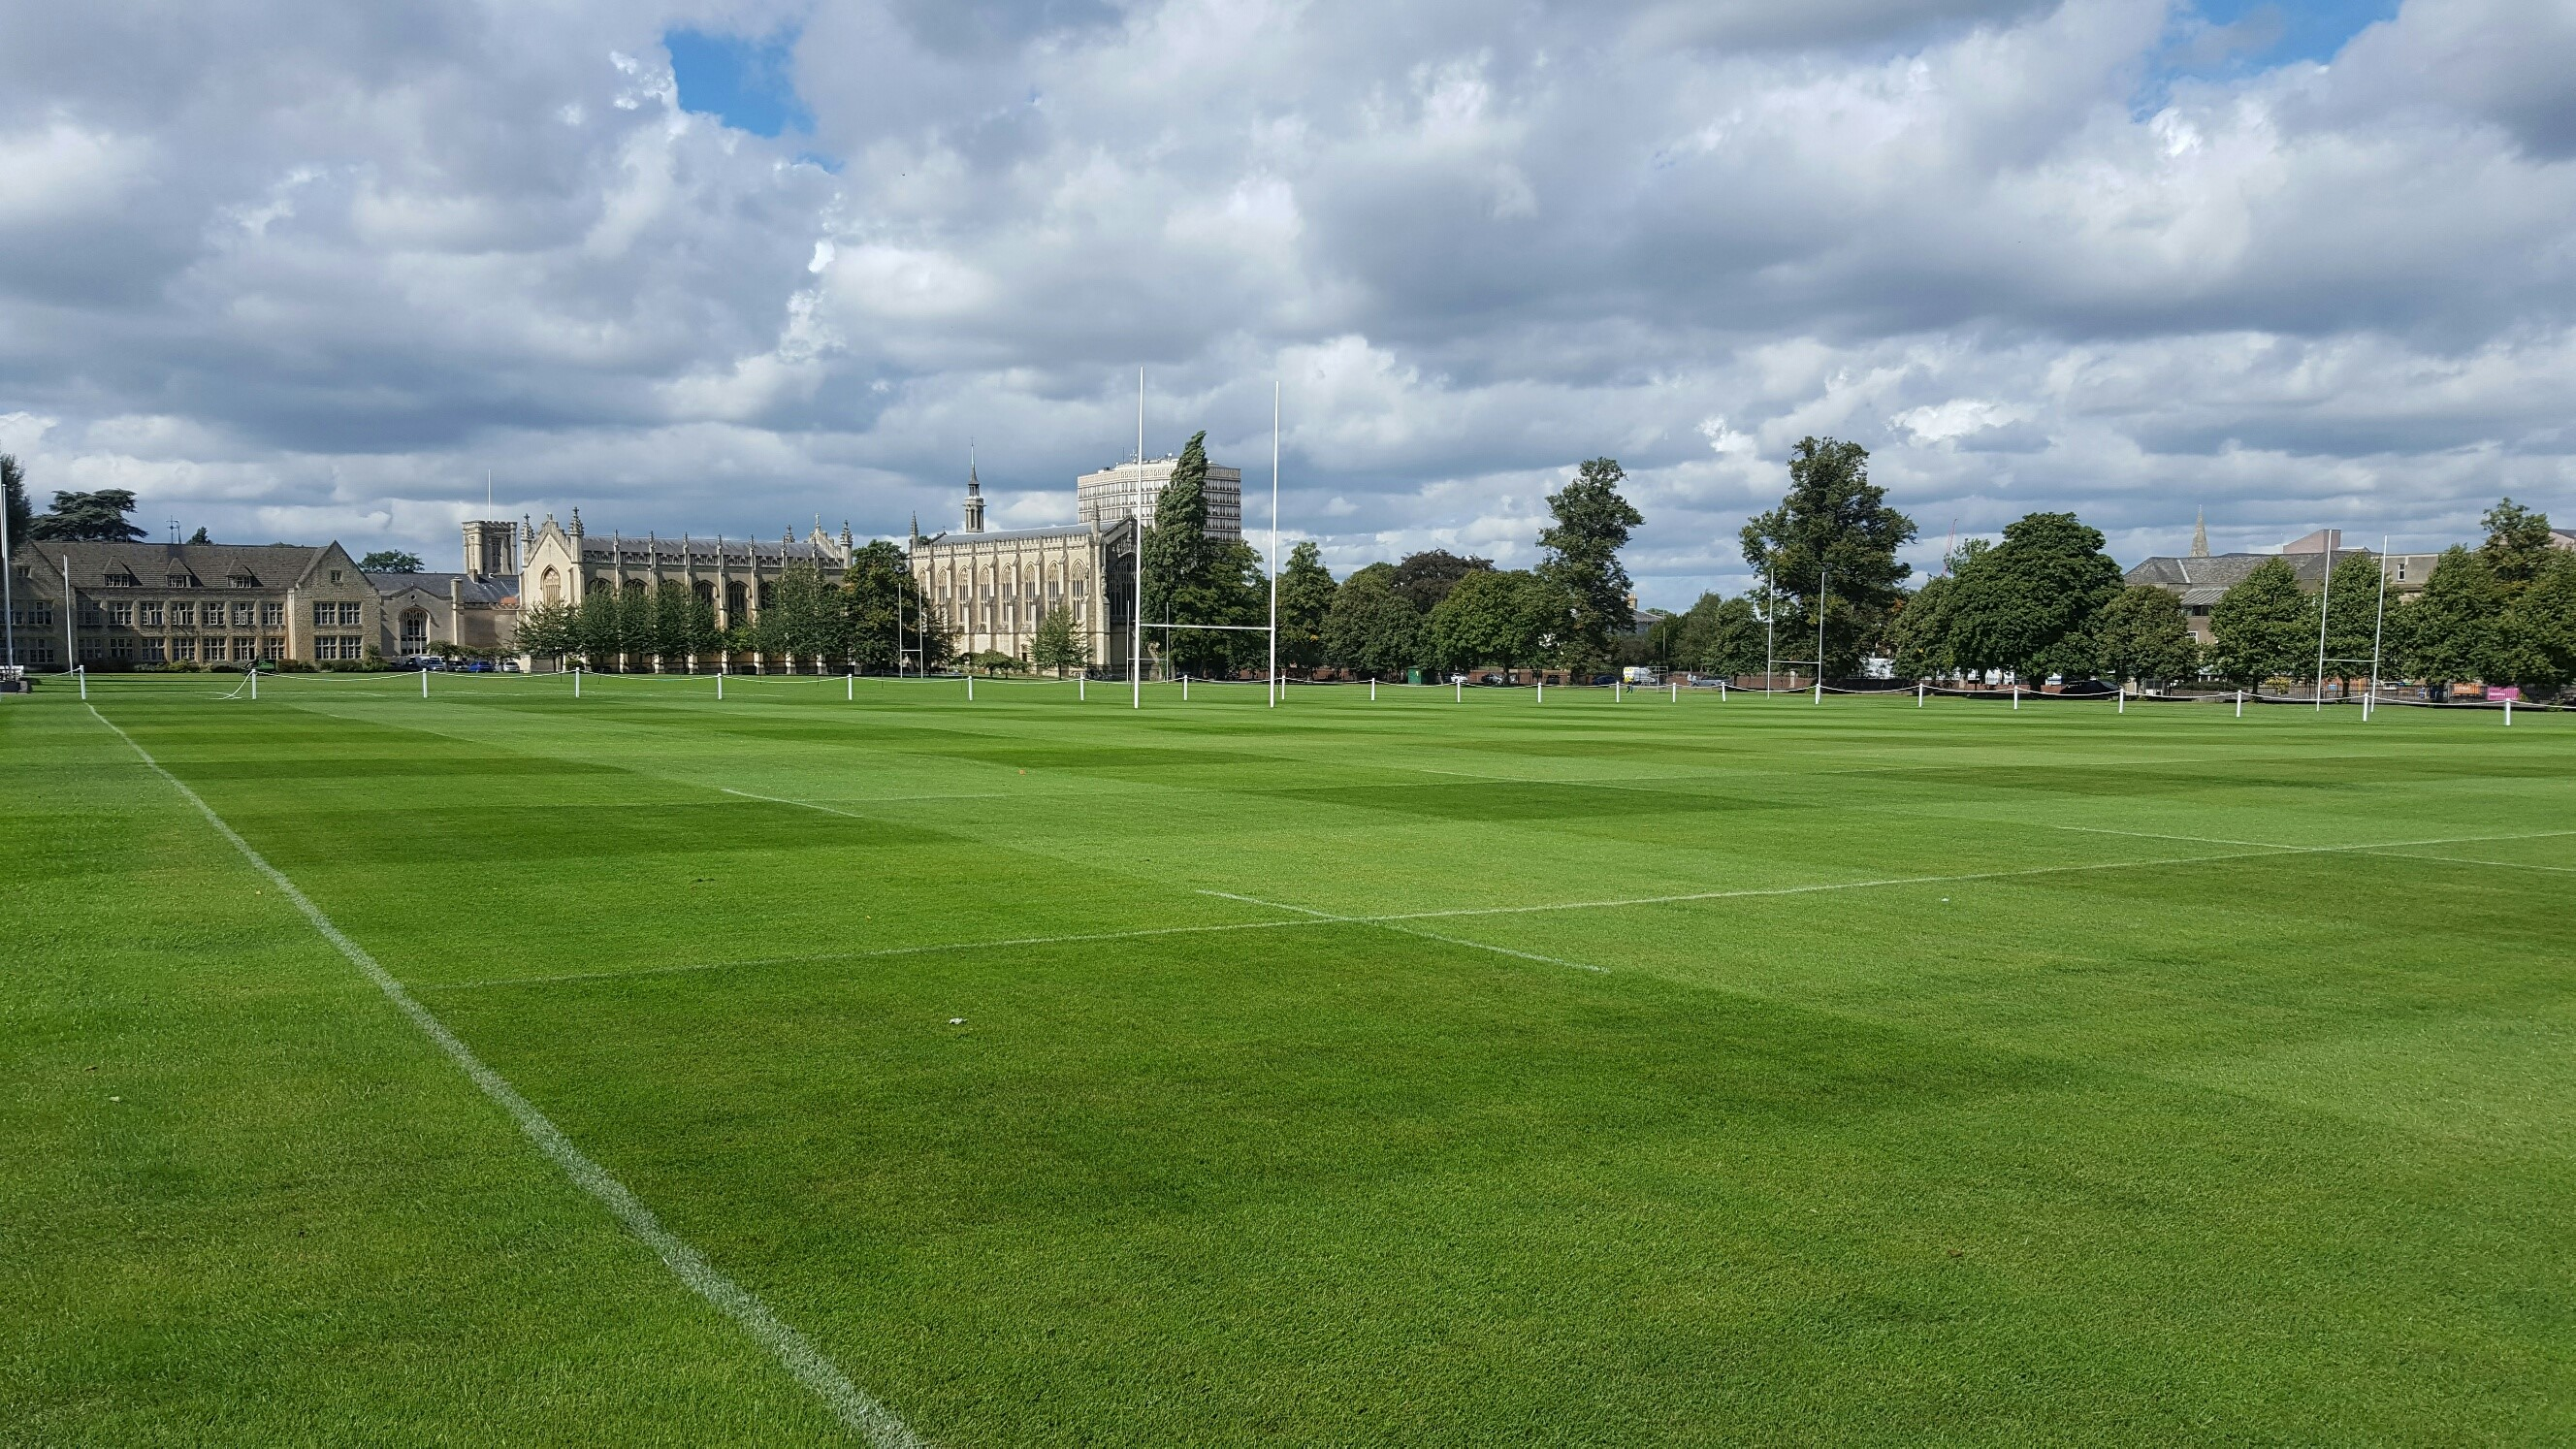 MM keeps standards high at Cheltenham College